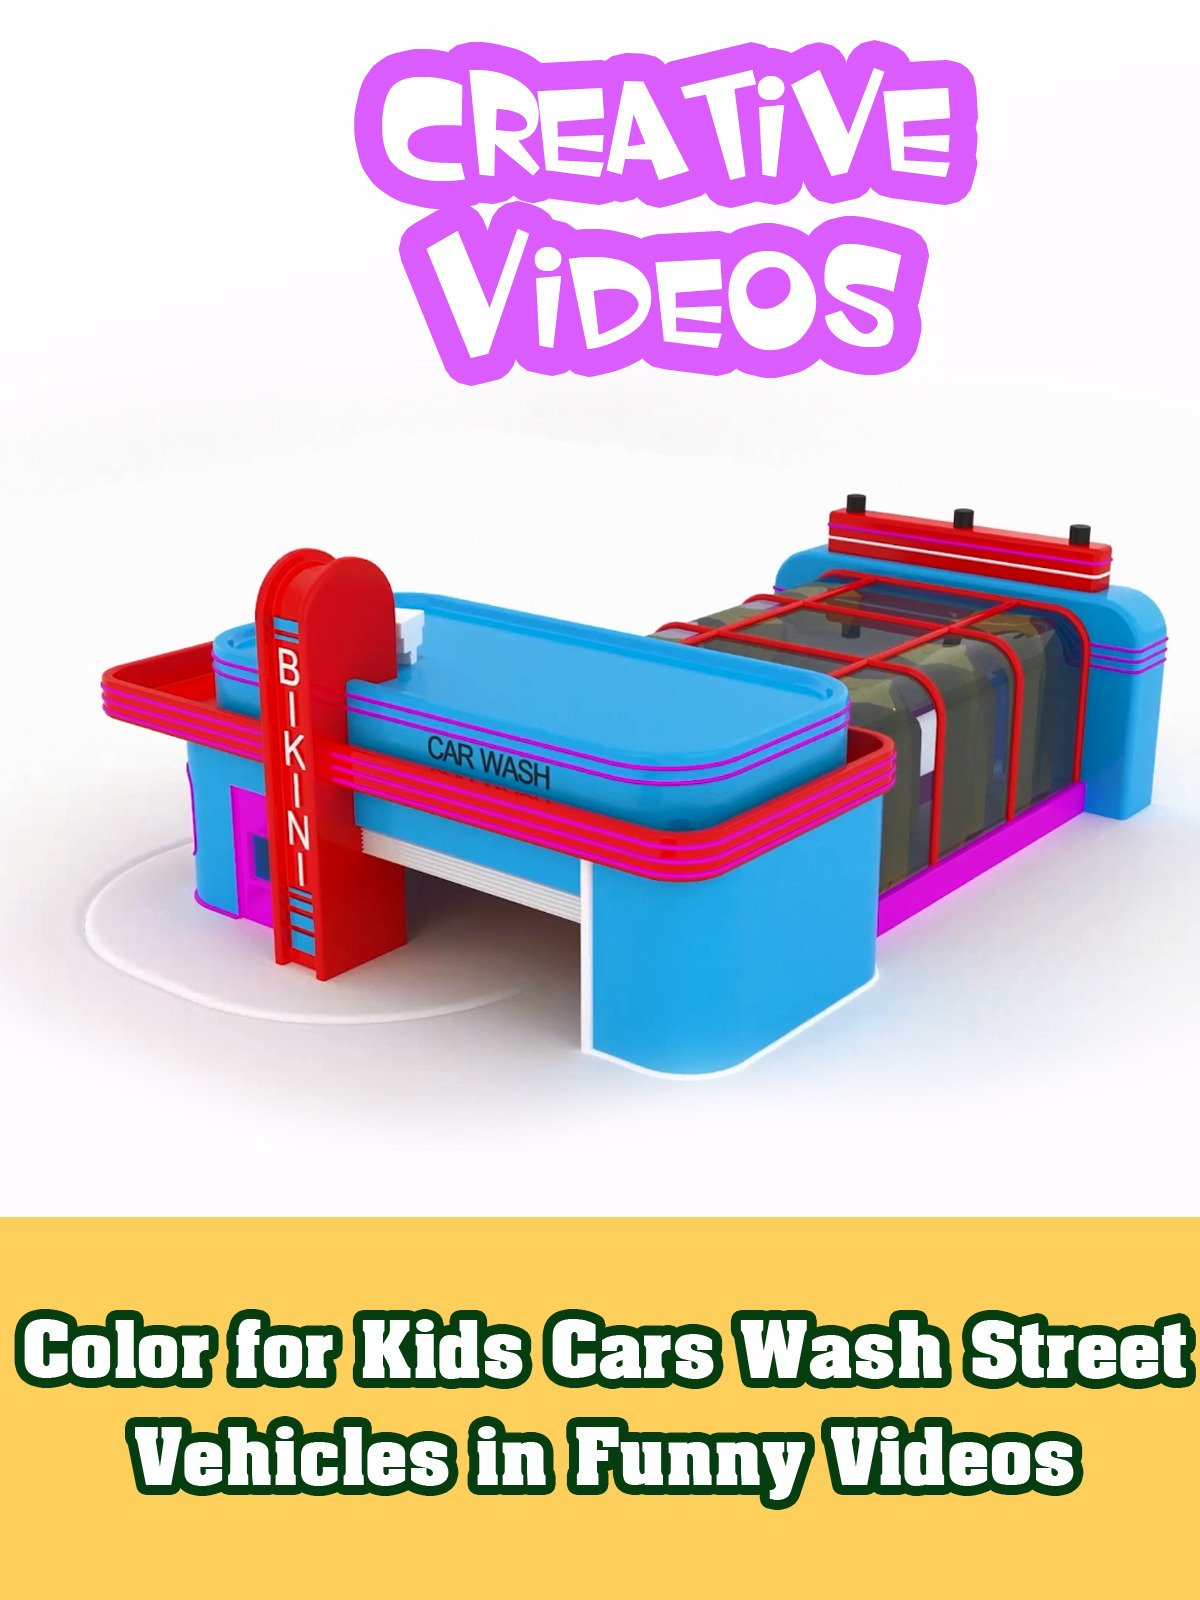 Color for Kids Cars Wash Street Vehicles in Funny Videos